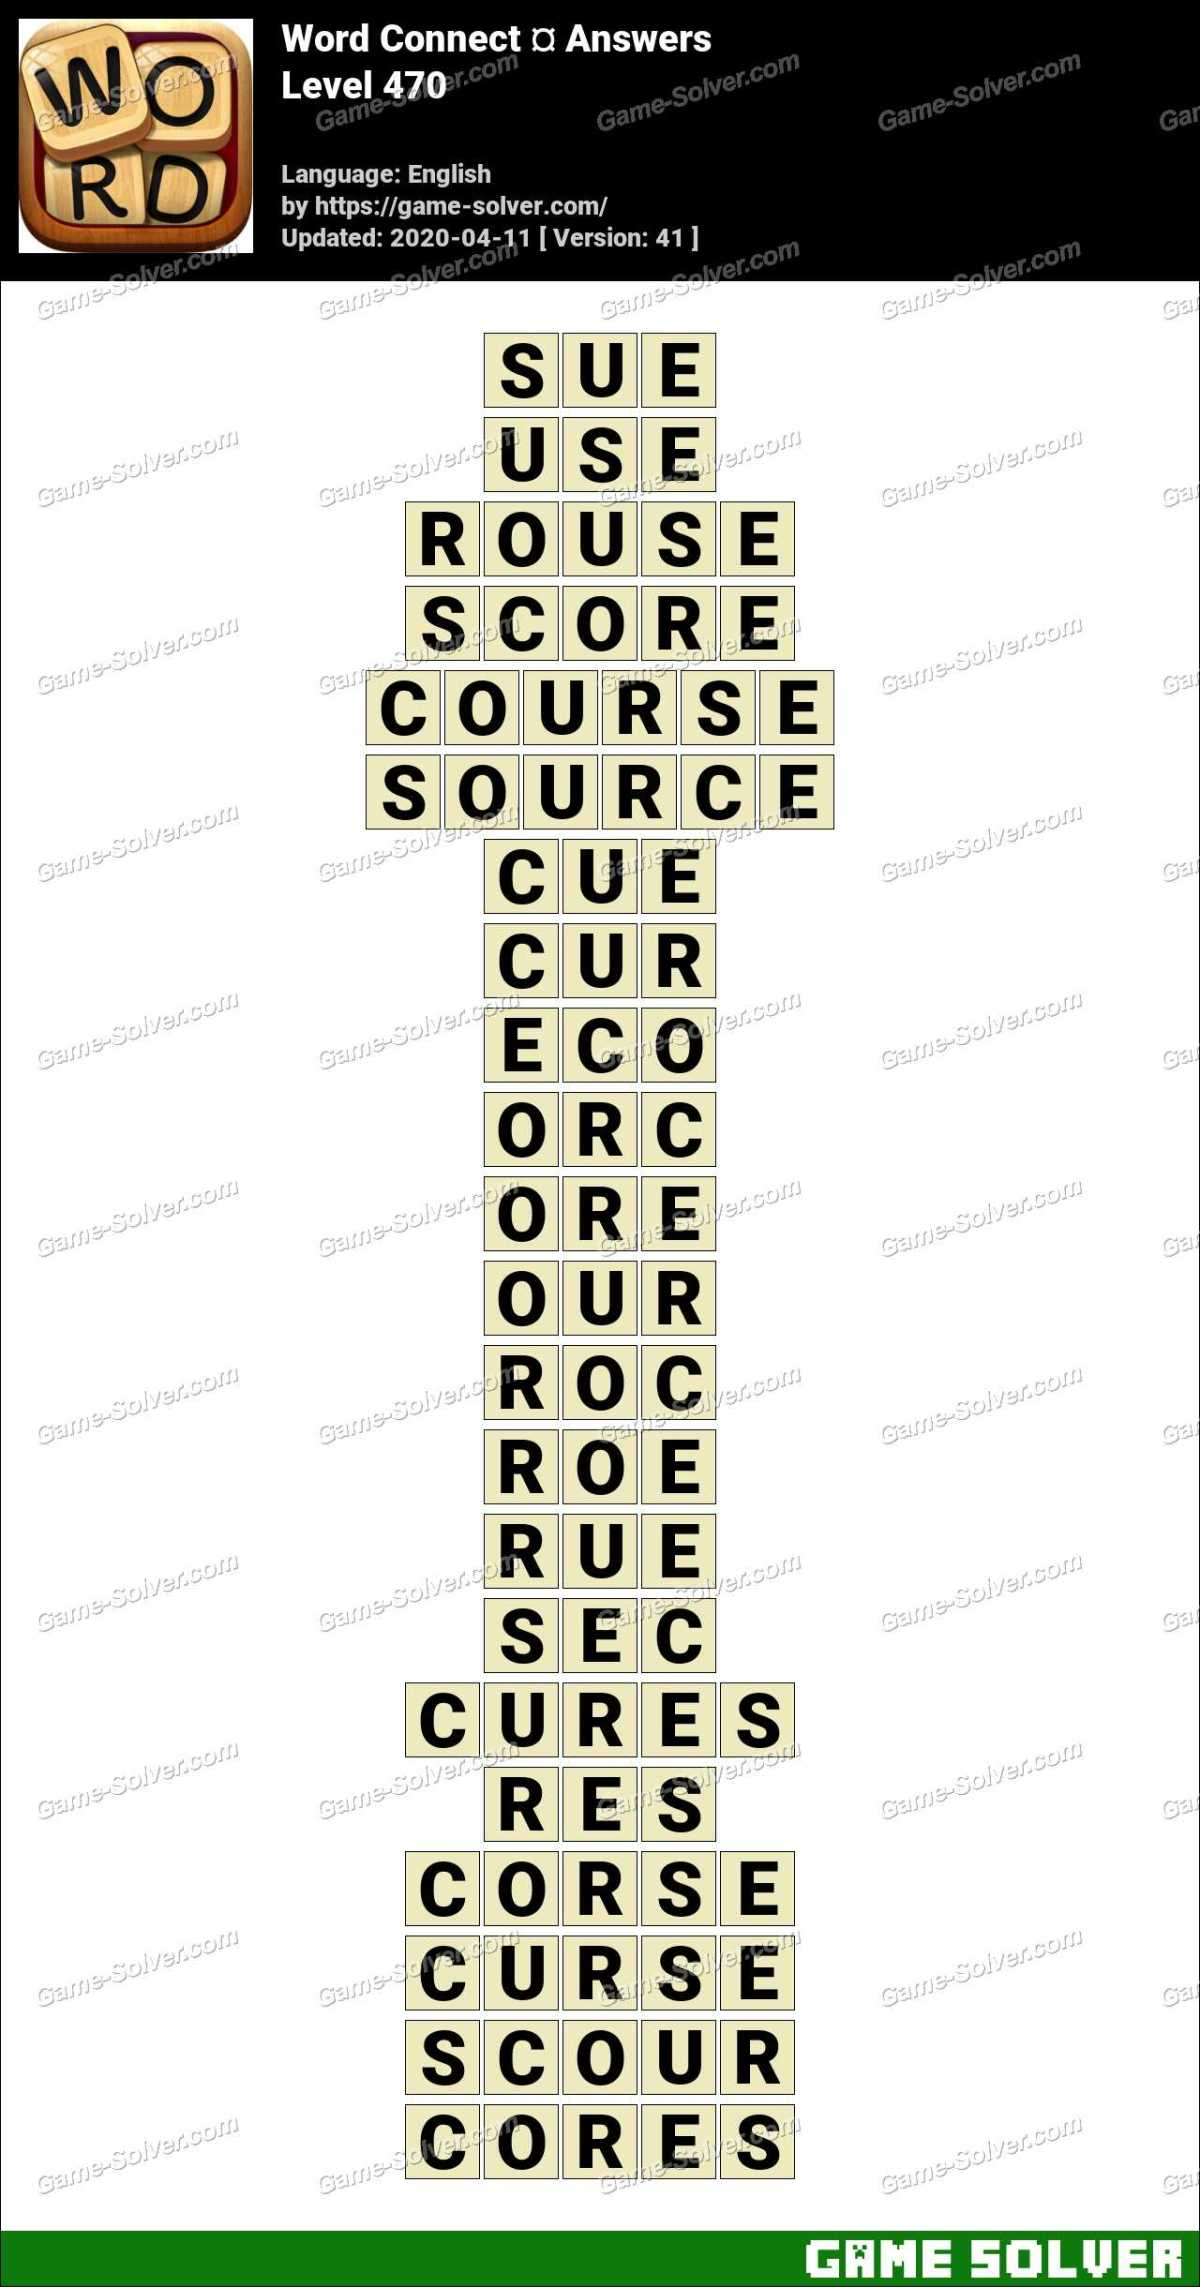 Word Connect Level 470 Answers